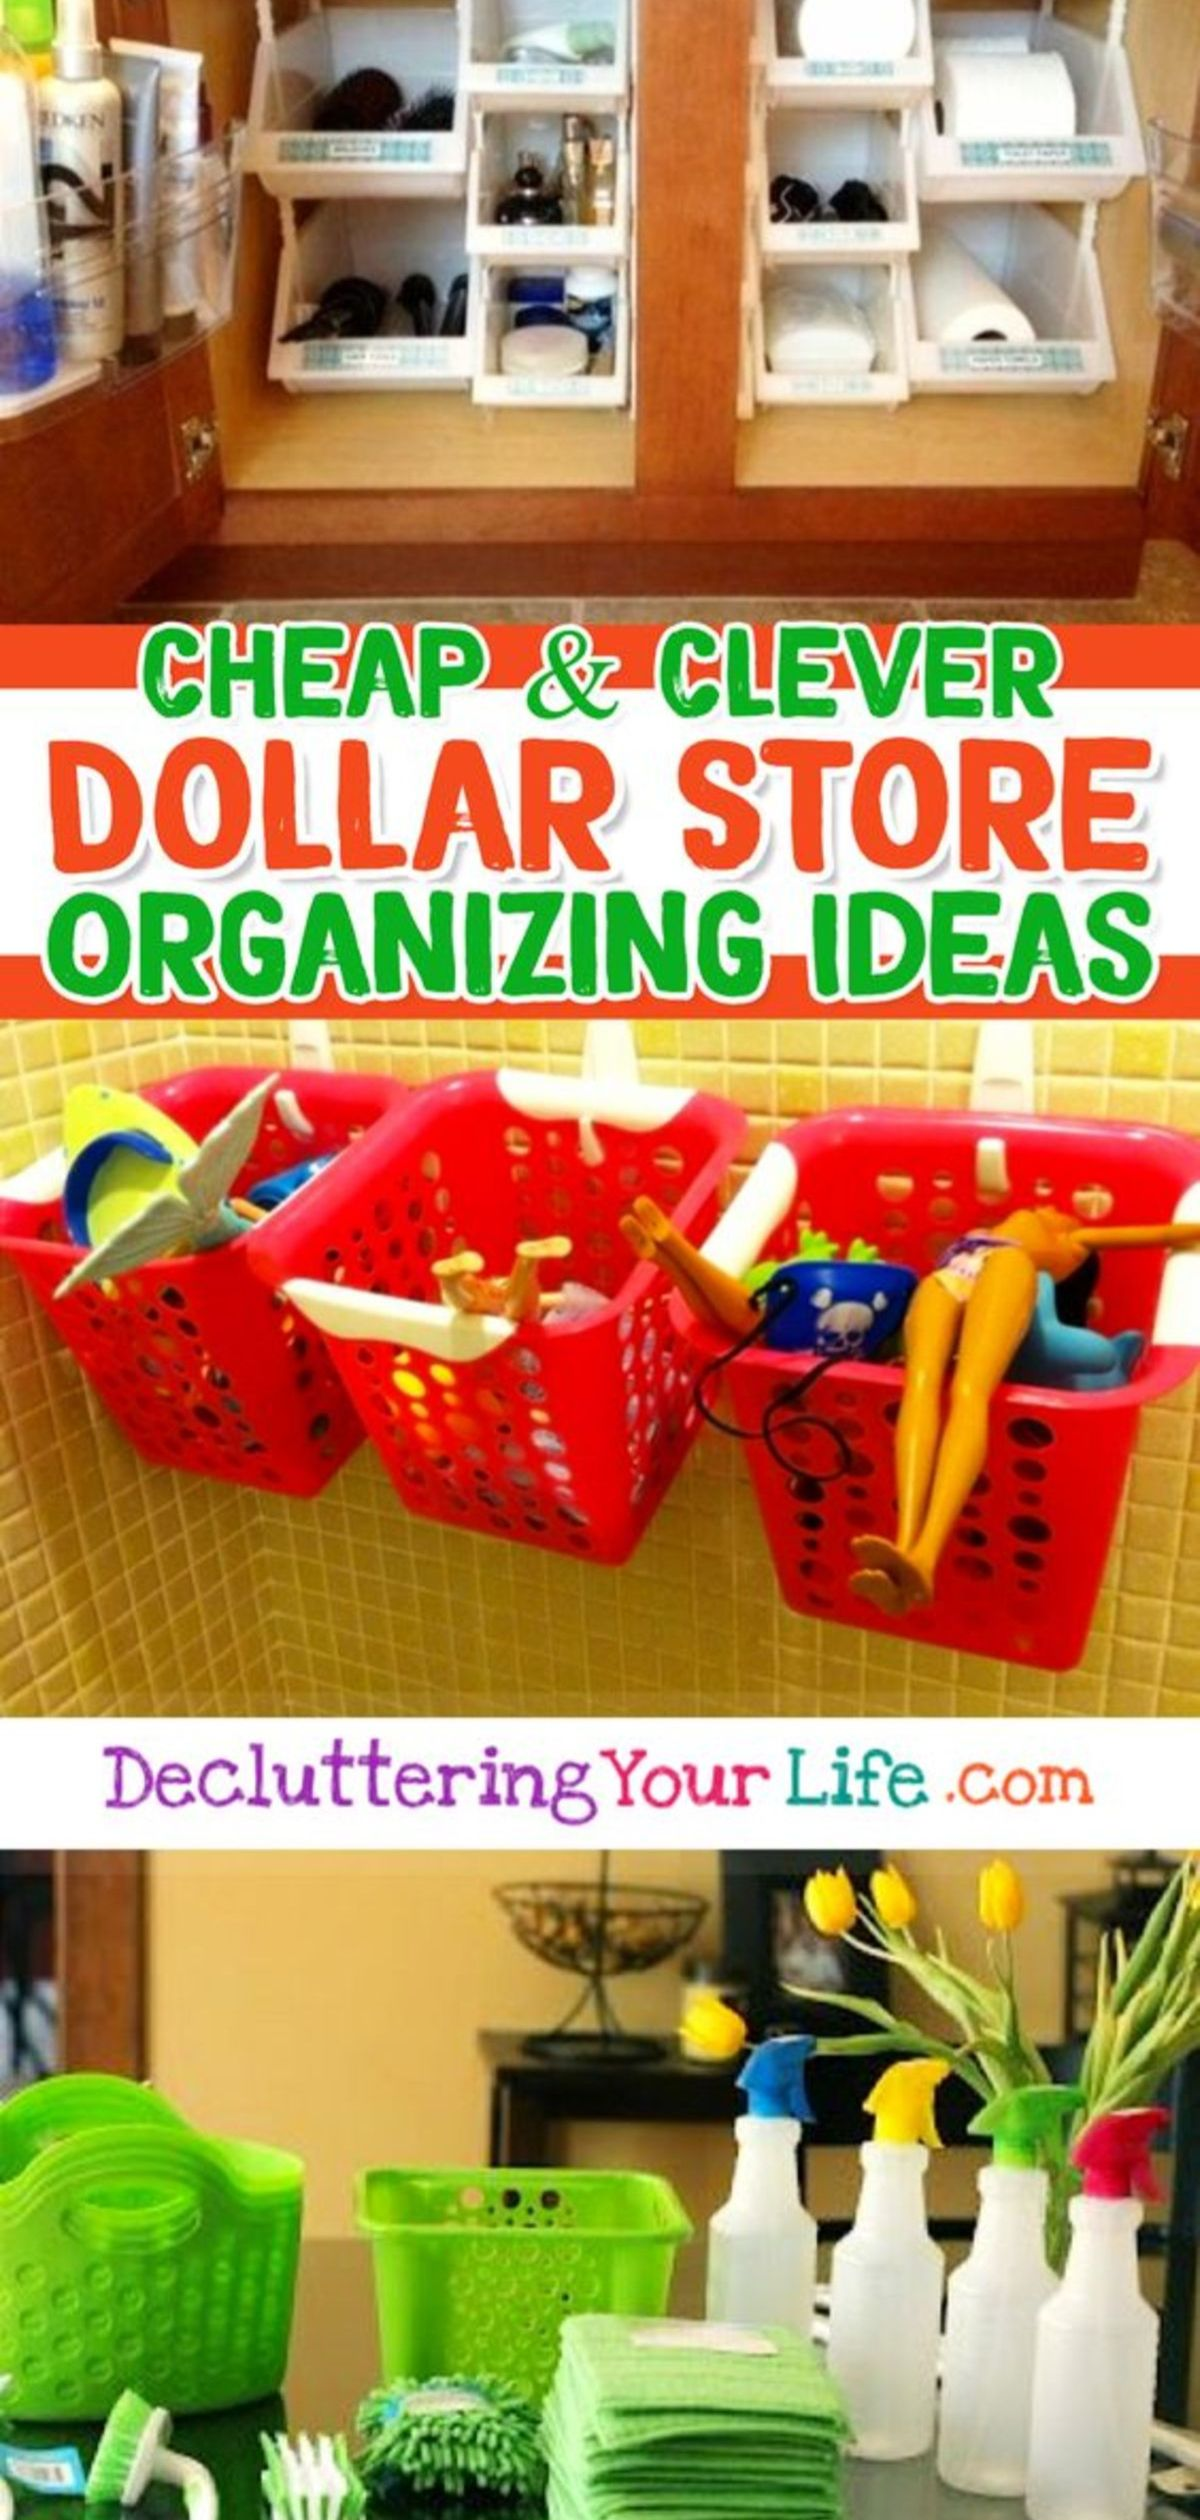 Awesome Dollar Store & Dollar Tree Organization Hacks for Organizing Your Home on a Budget in 2019 images